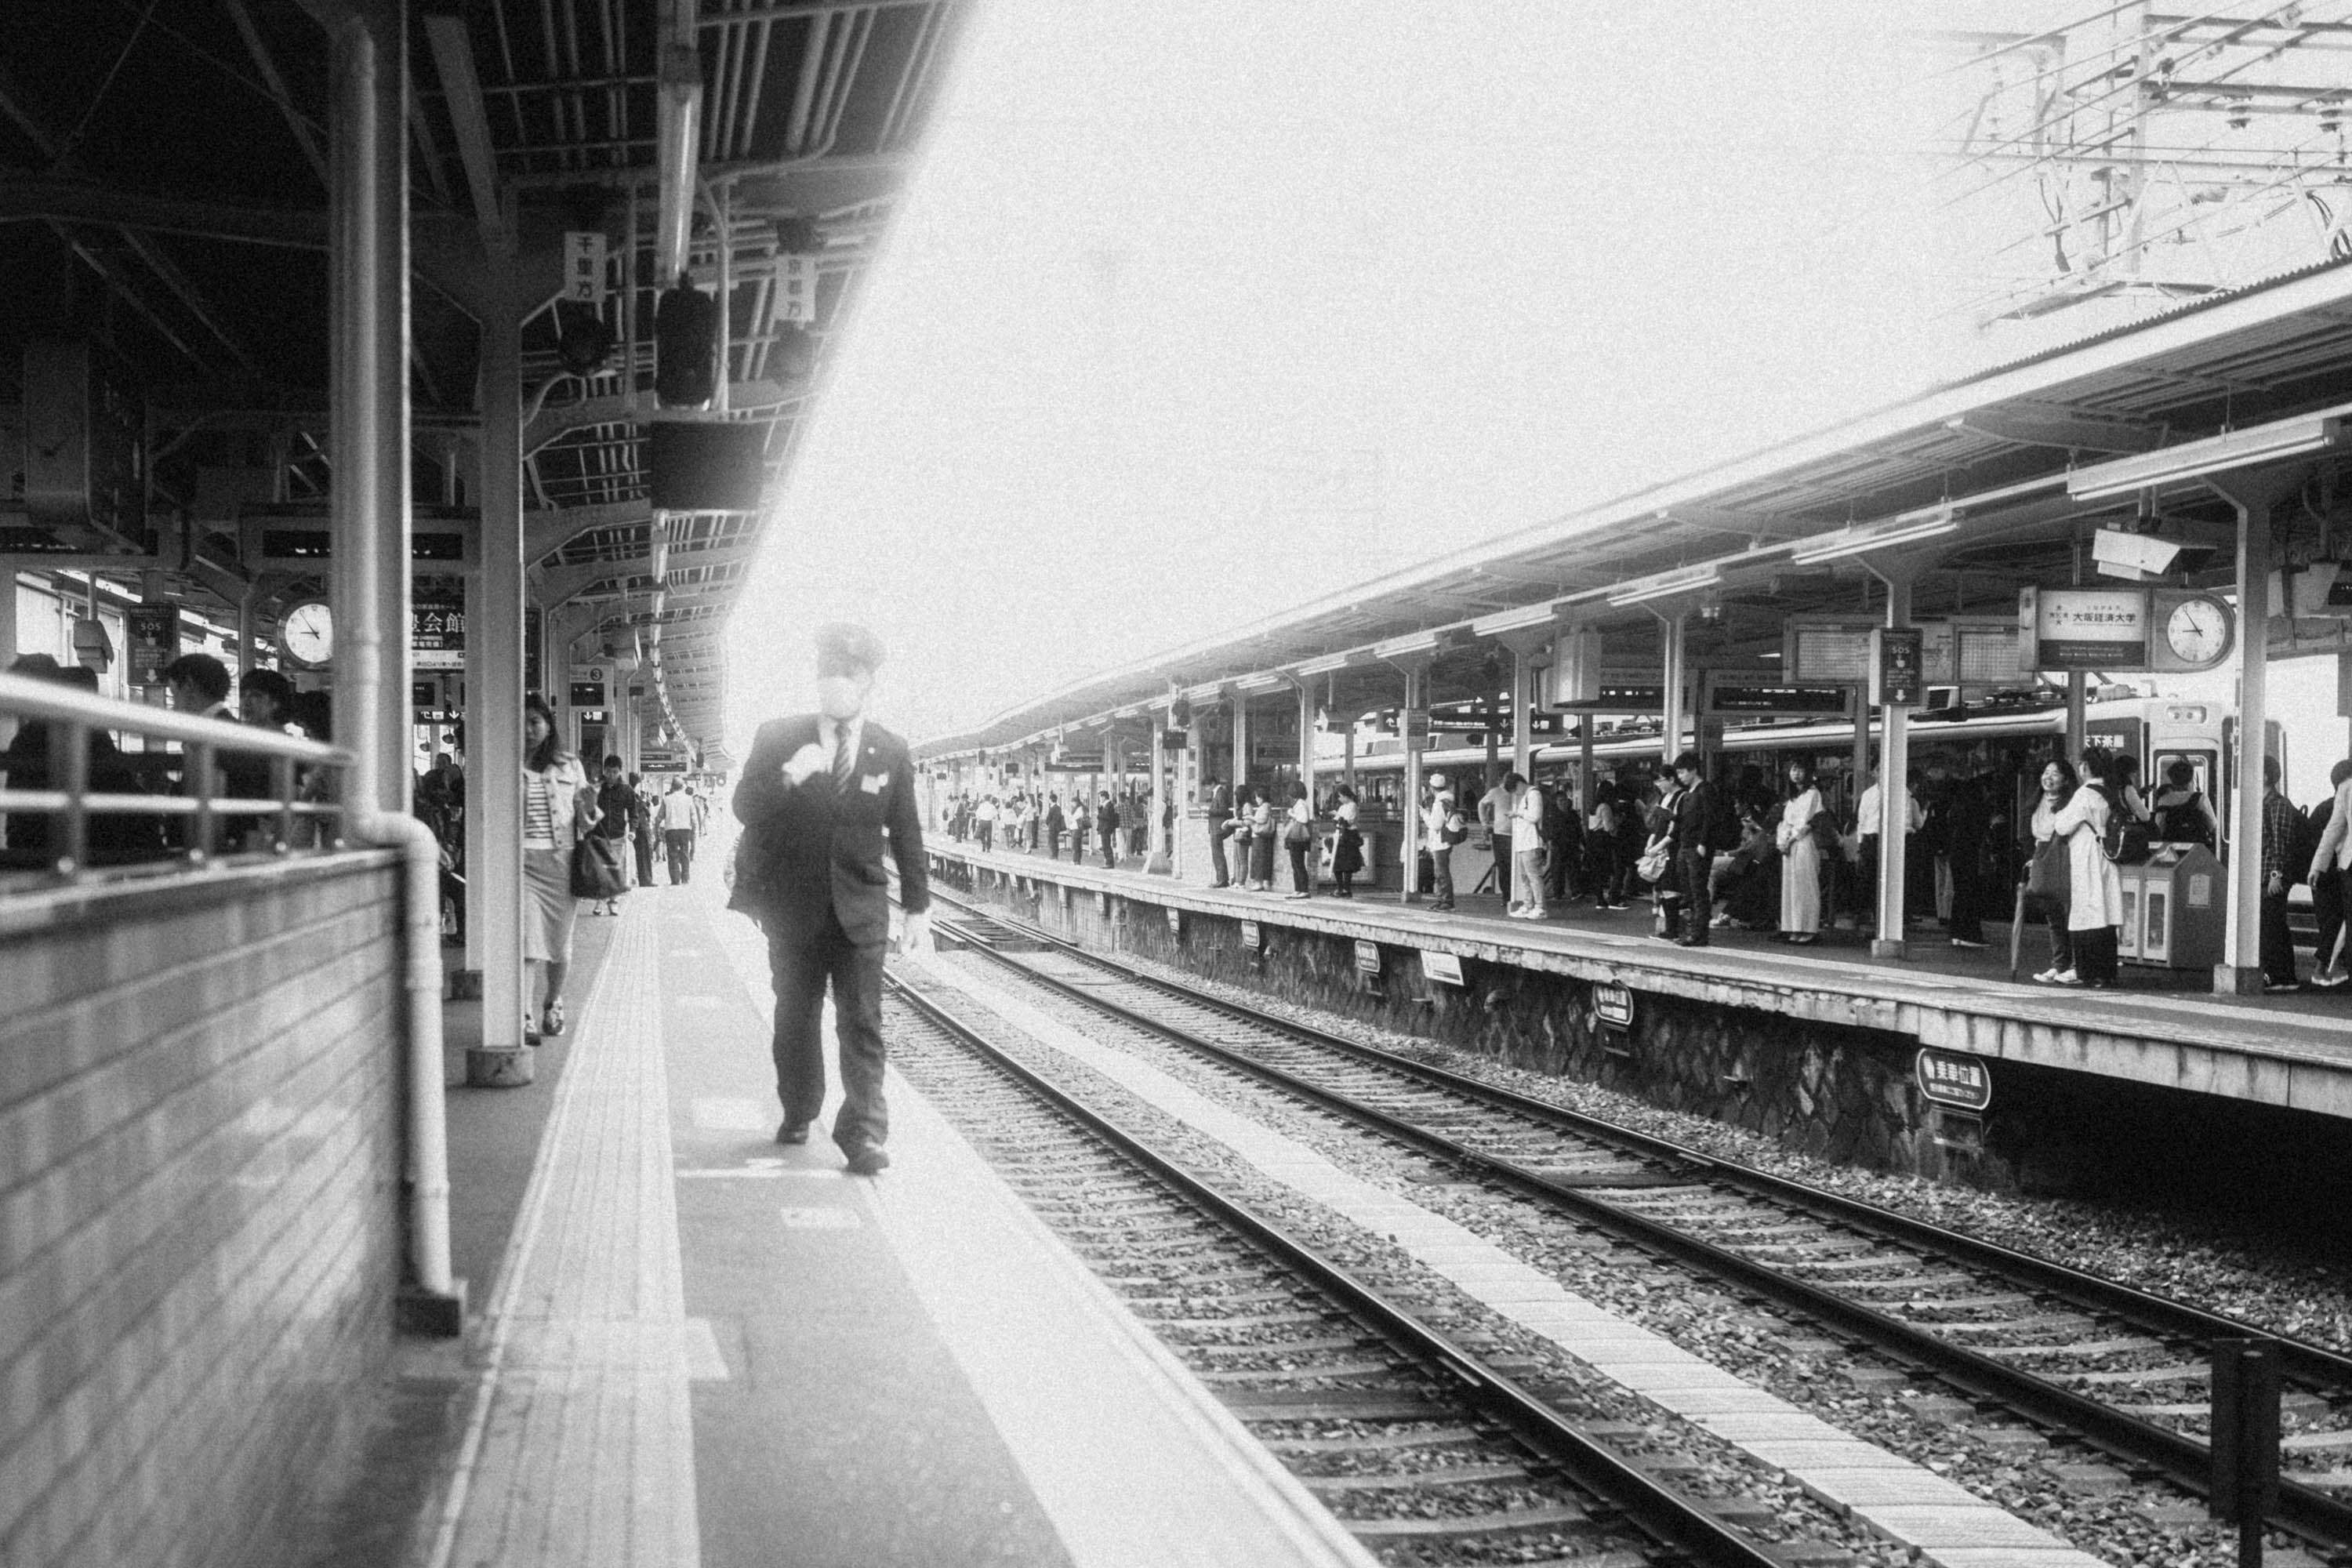 Street Photography in Japan mit dem SIGMA 35mm F1,4 DG HSM | Art © Kim Pottkämper